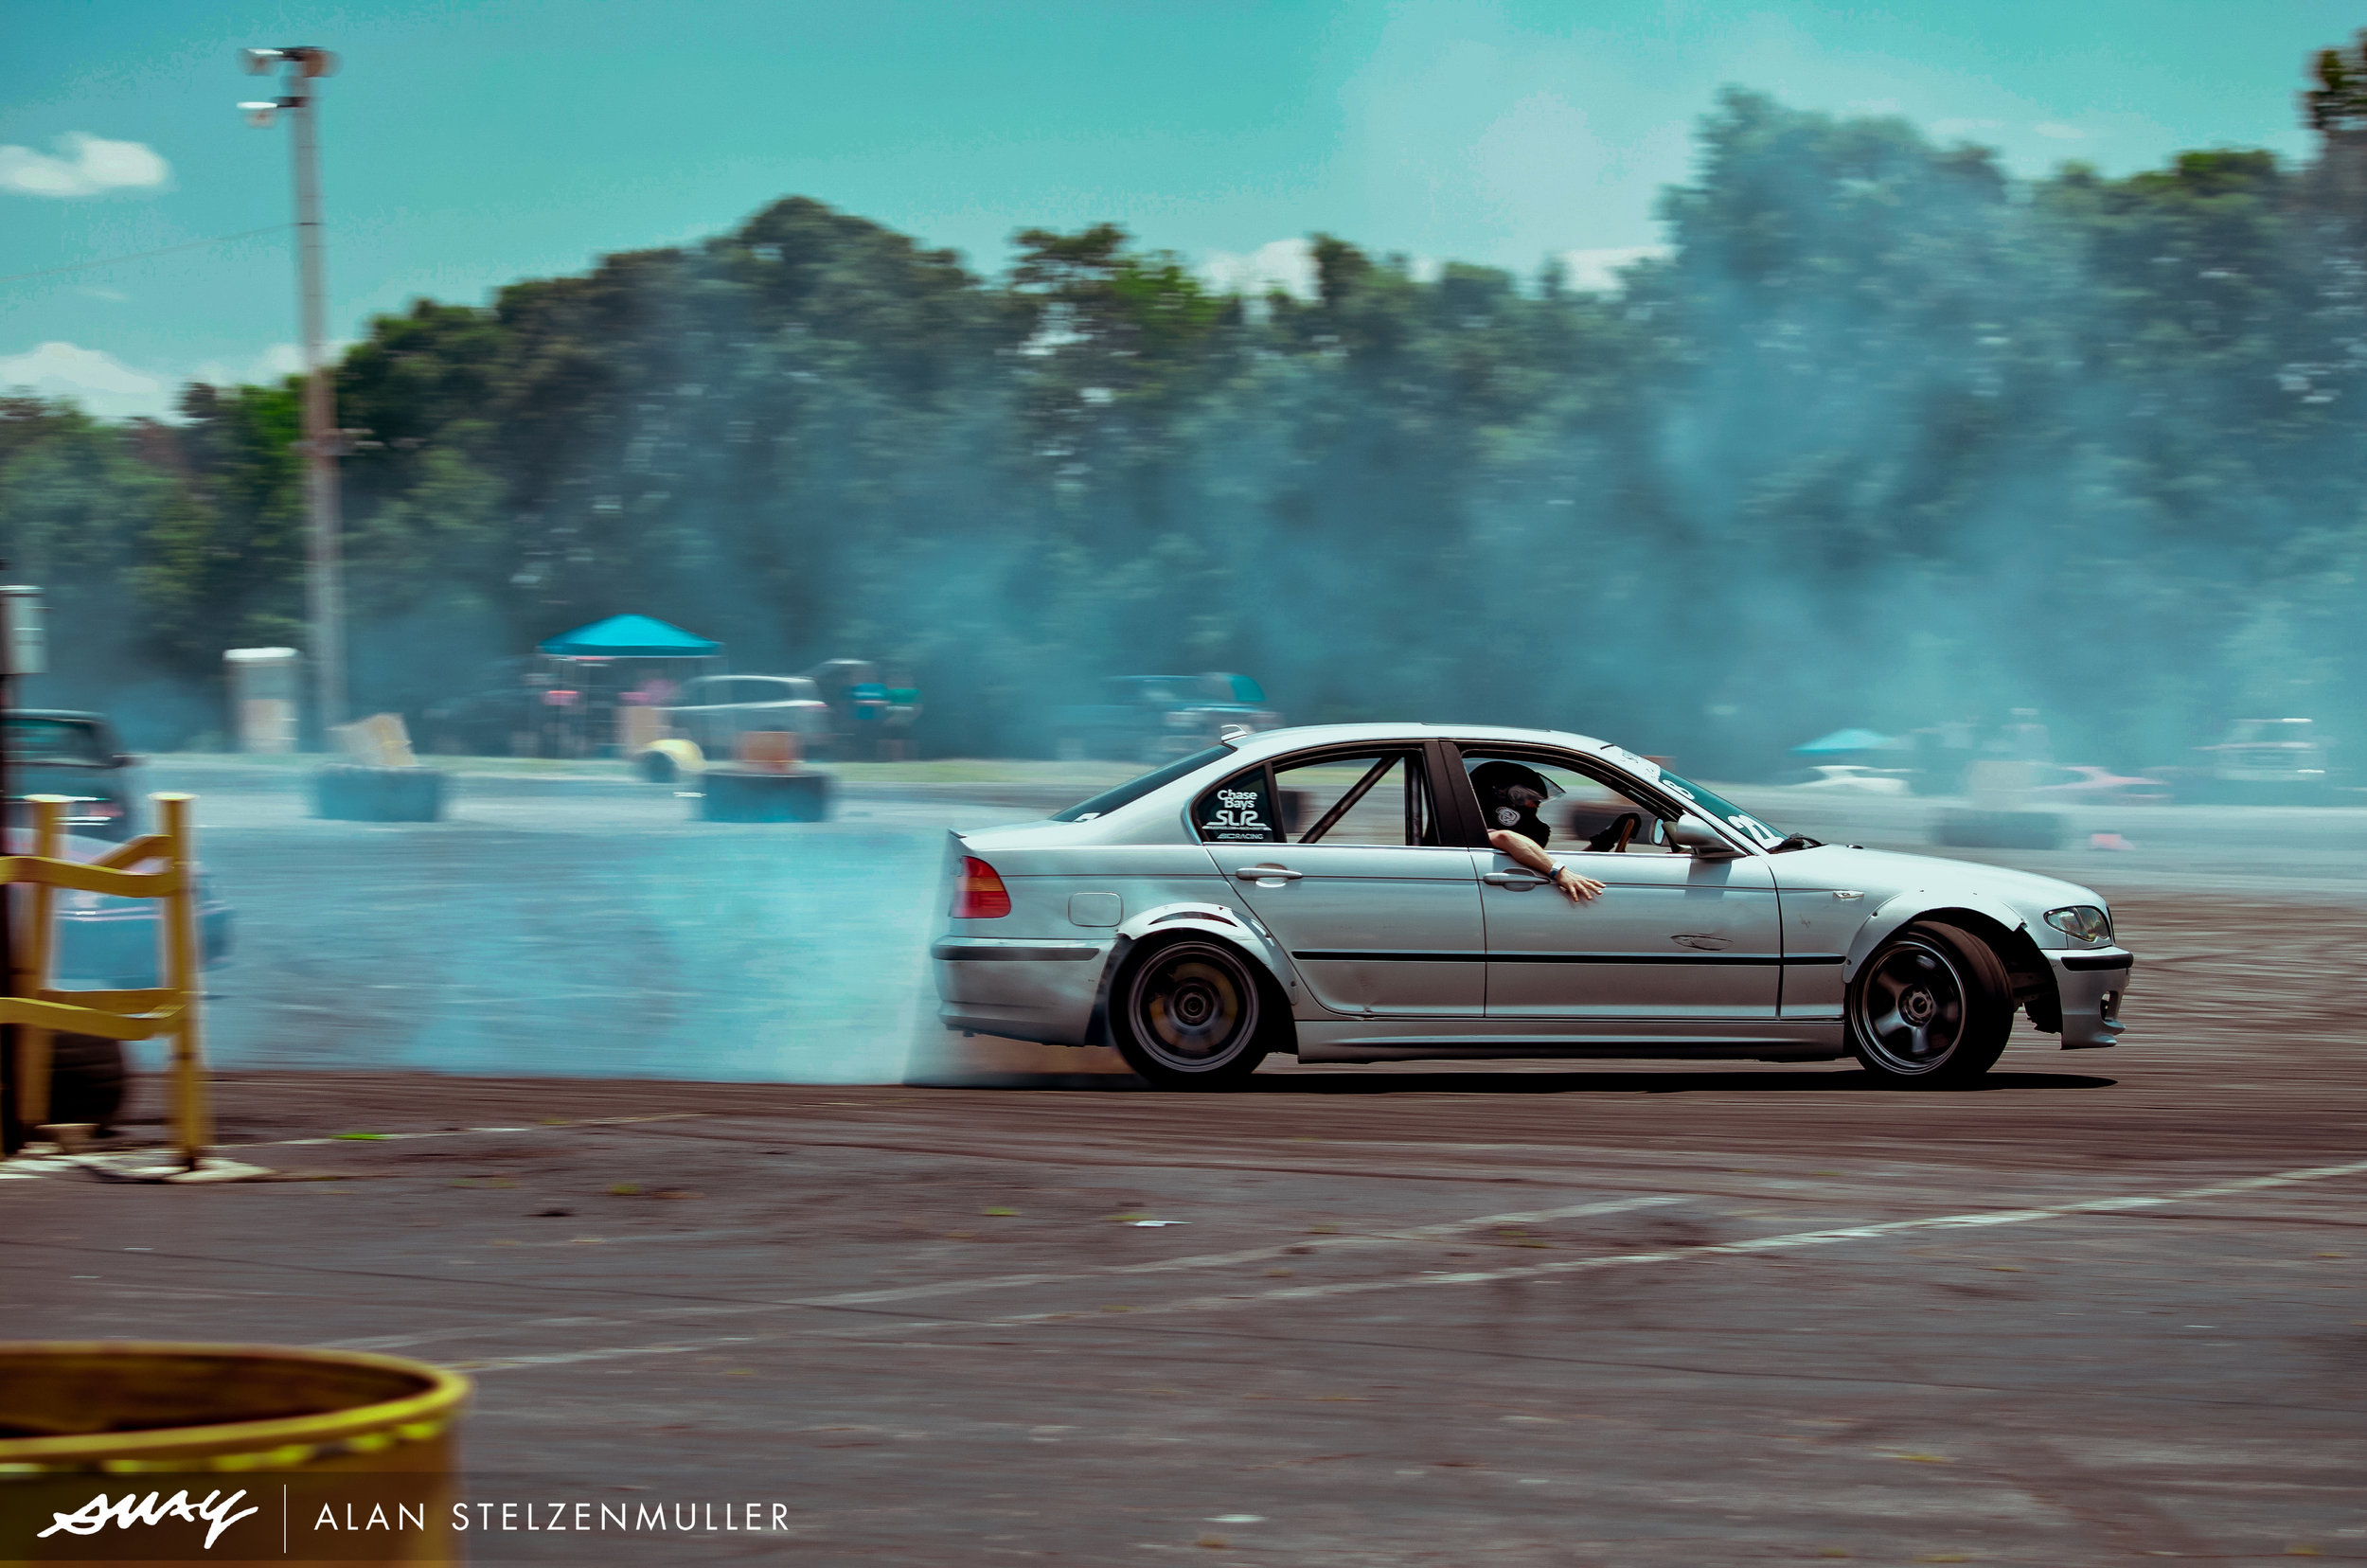 """Coming off his win at Round 1 of Spirit JP drift series and driving at Hyperfest, Alex Gold is presumably feeling pretty good, packing a newly added Vortech supercharger under the hood. His latest IG caption reads, """"This supercharger rips!"""""""